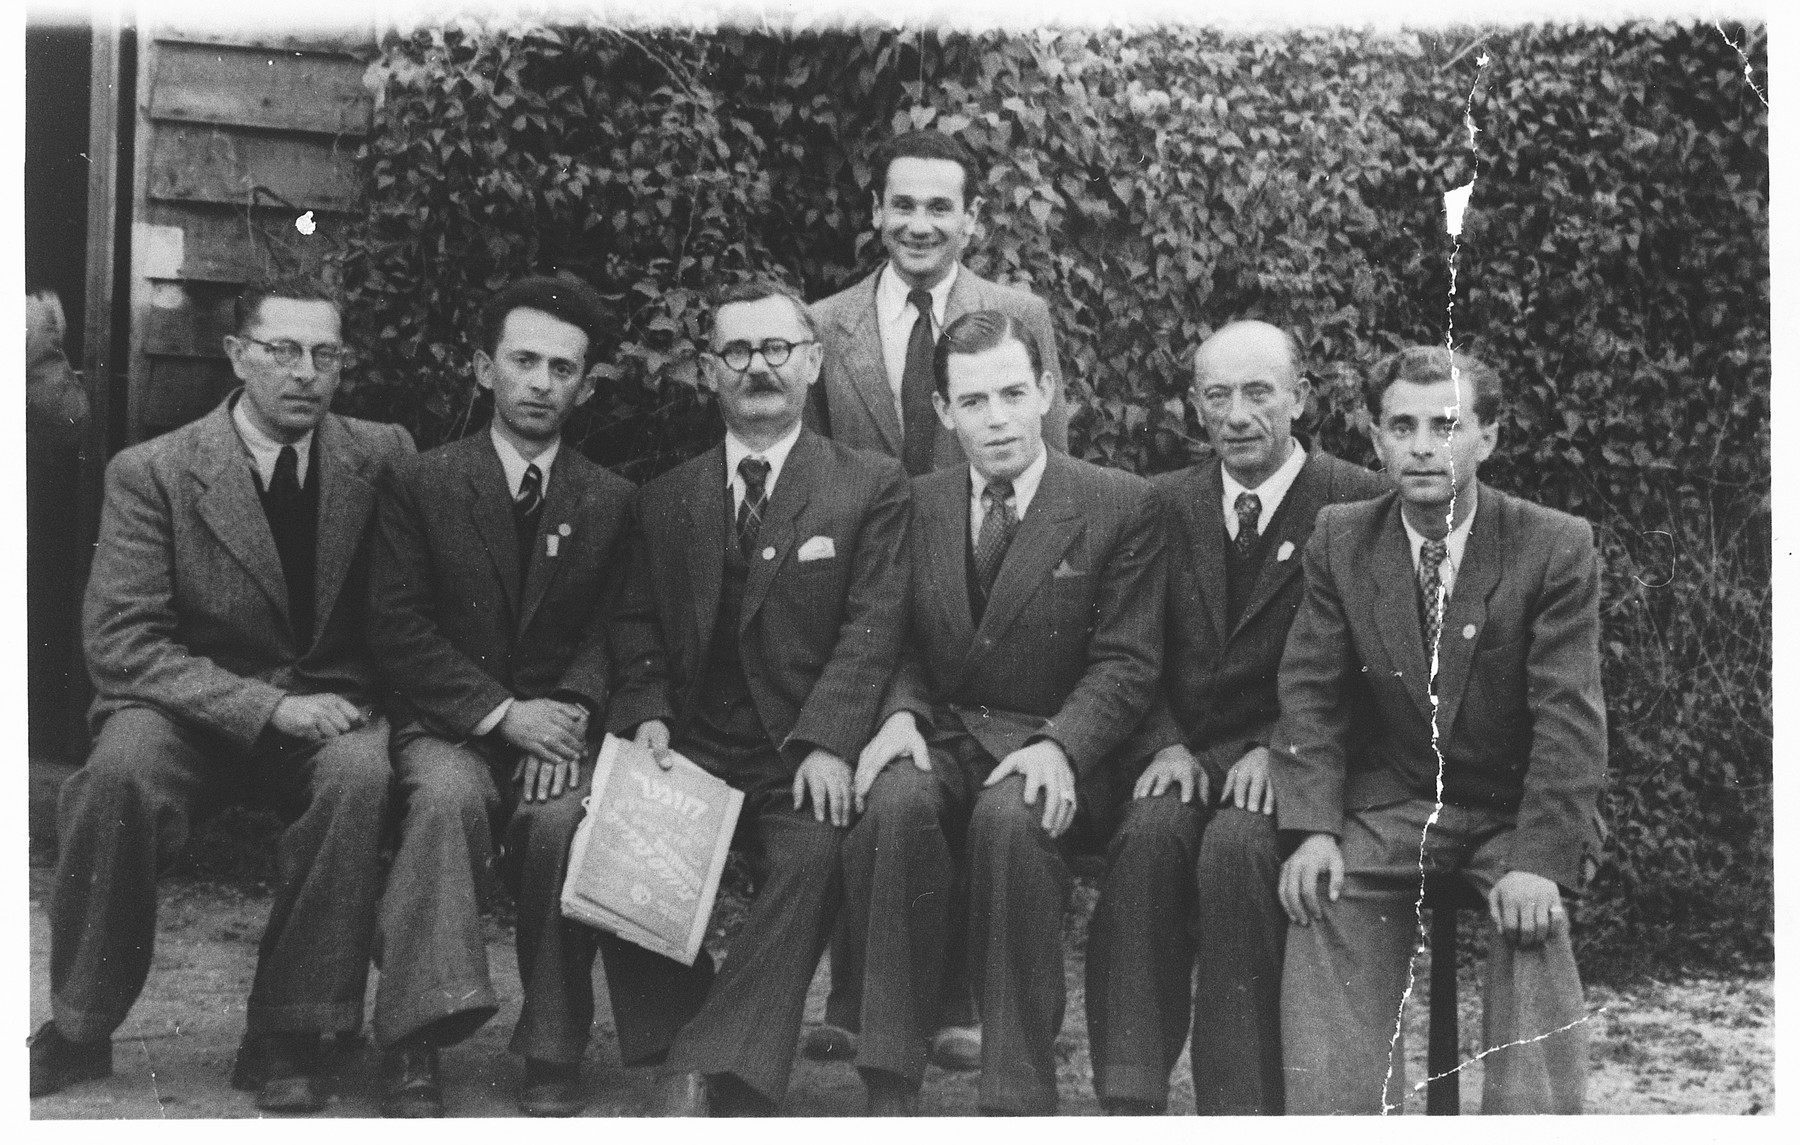 Members of the Wels displaced persons' camp presidium.  Seated second from right is Pinchos Wagner, head of the camp post office.